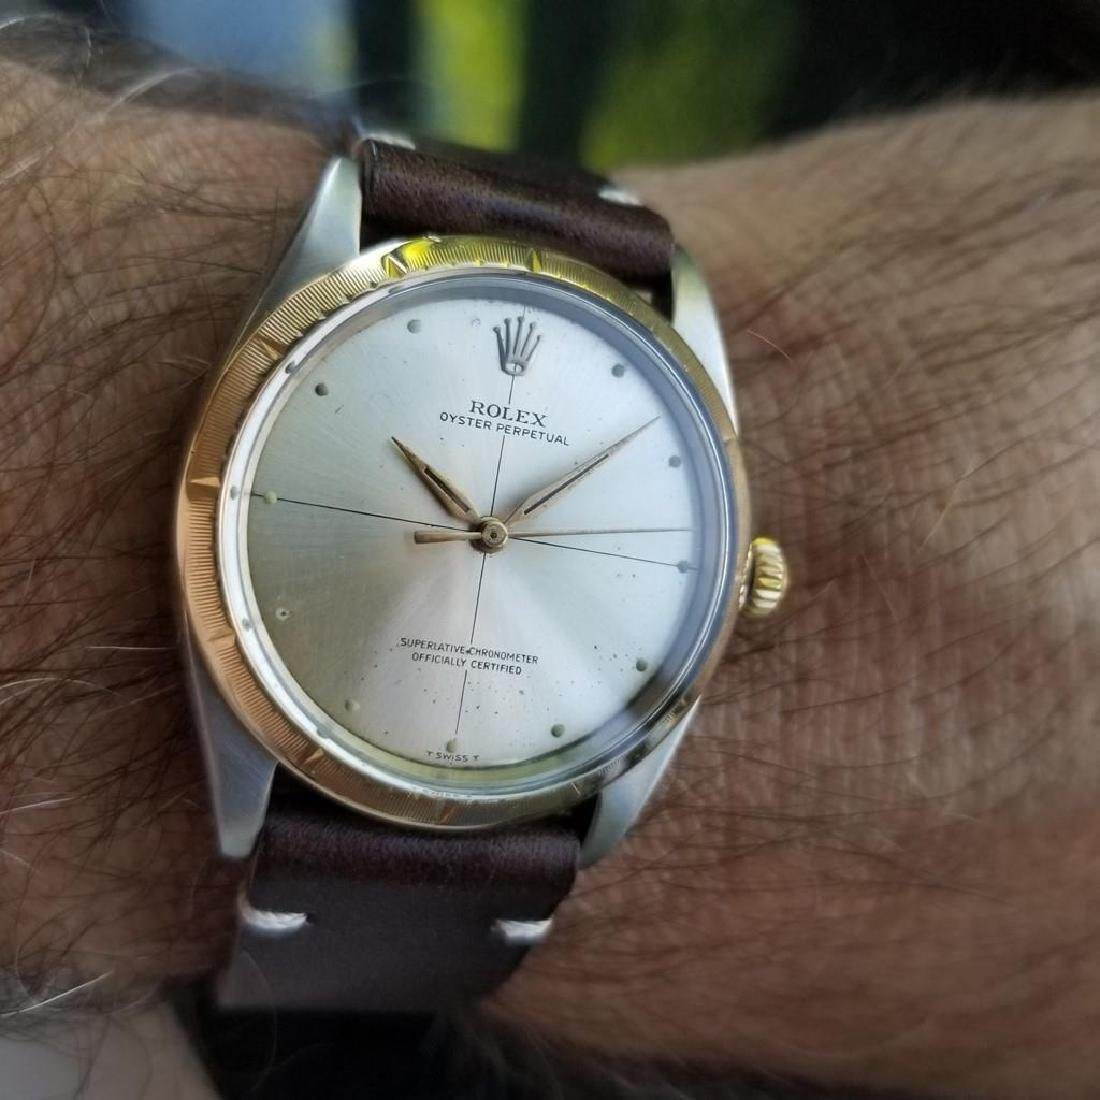 ROLEX Men's 18K and SS Oyster Perpetual 1008 Zephyr - 10